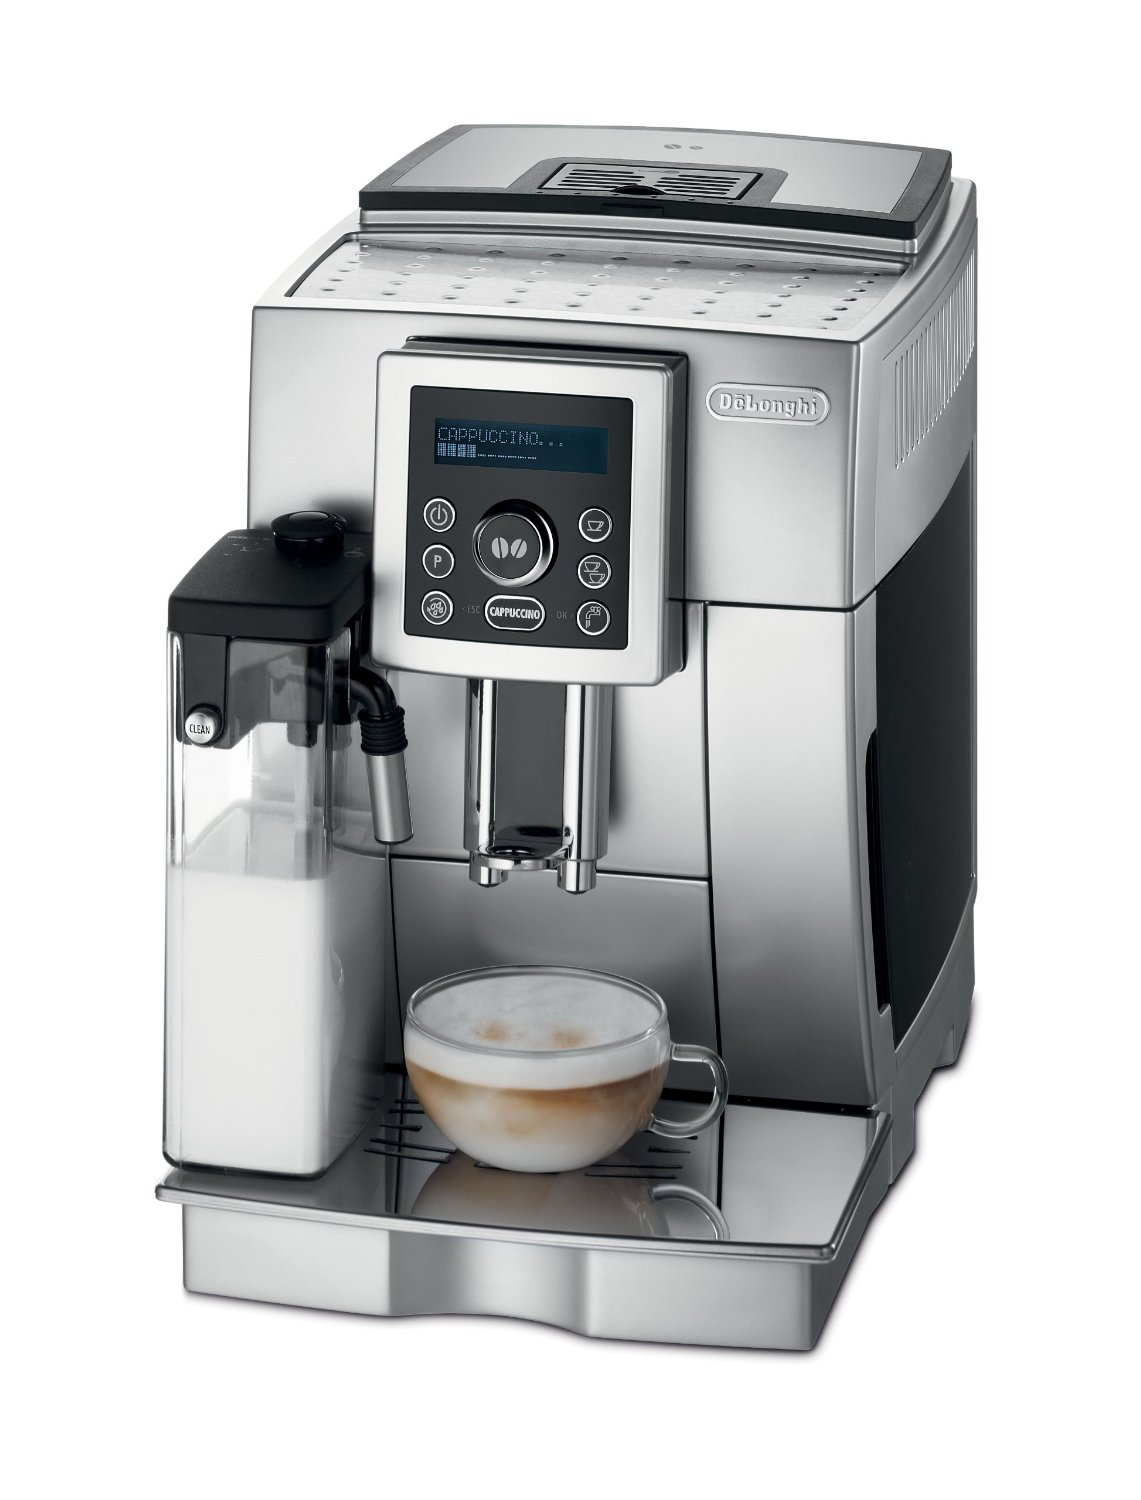 delonghi ecam23450sl espresso machine view on amazon - Delonghi Espresso Machine